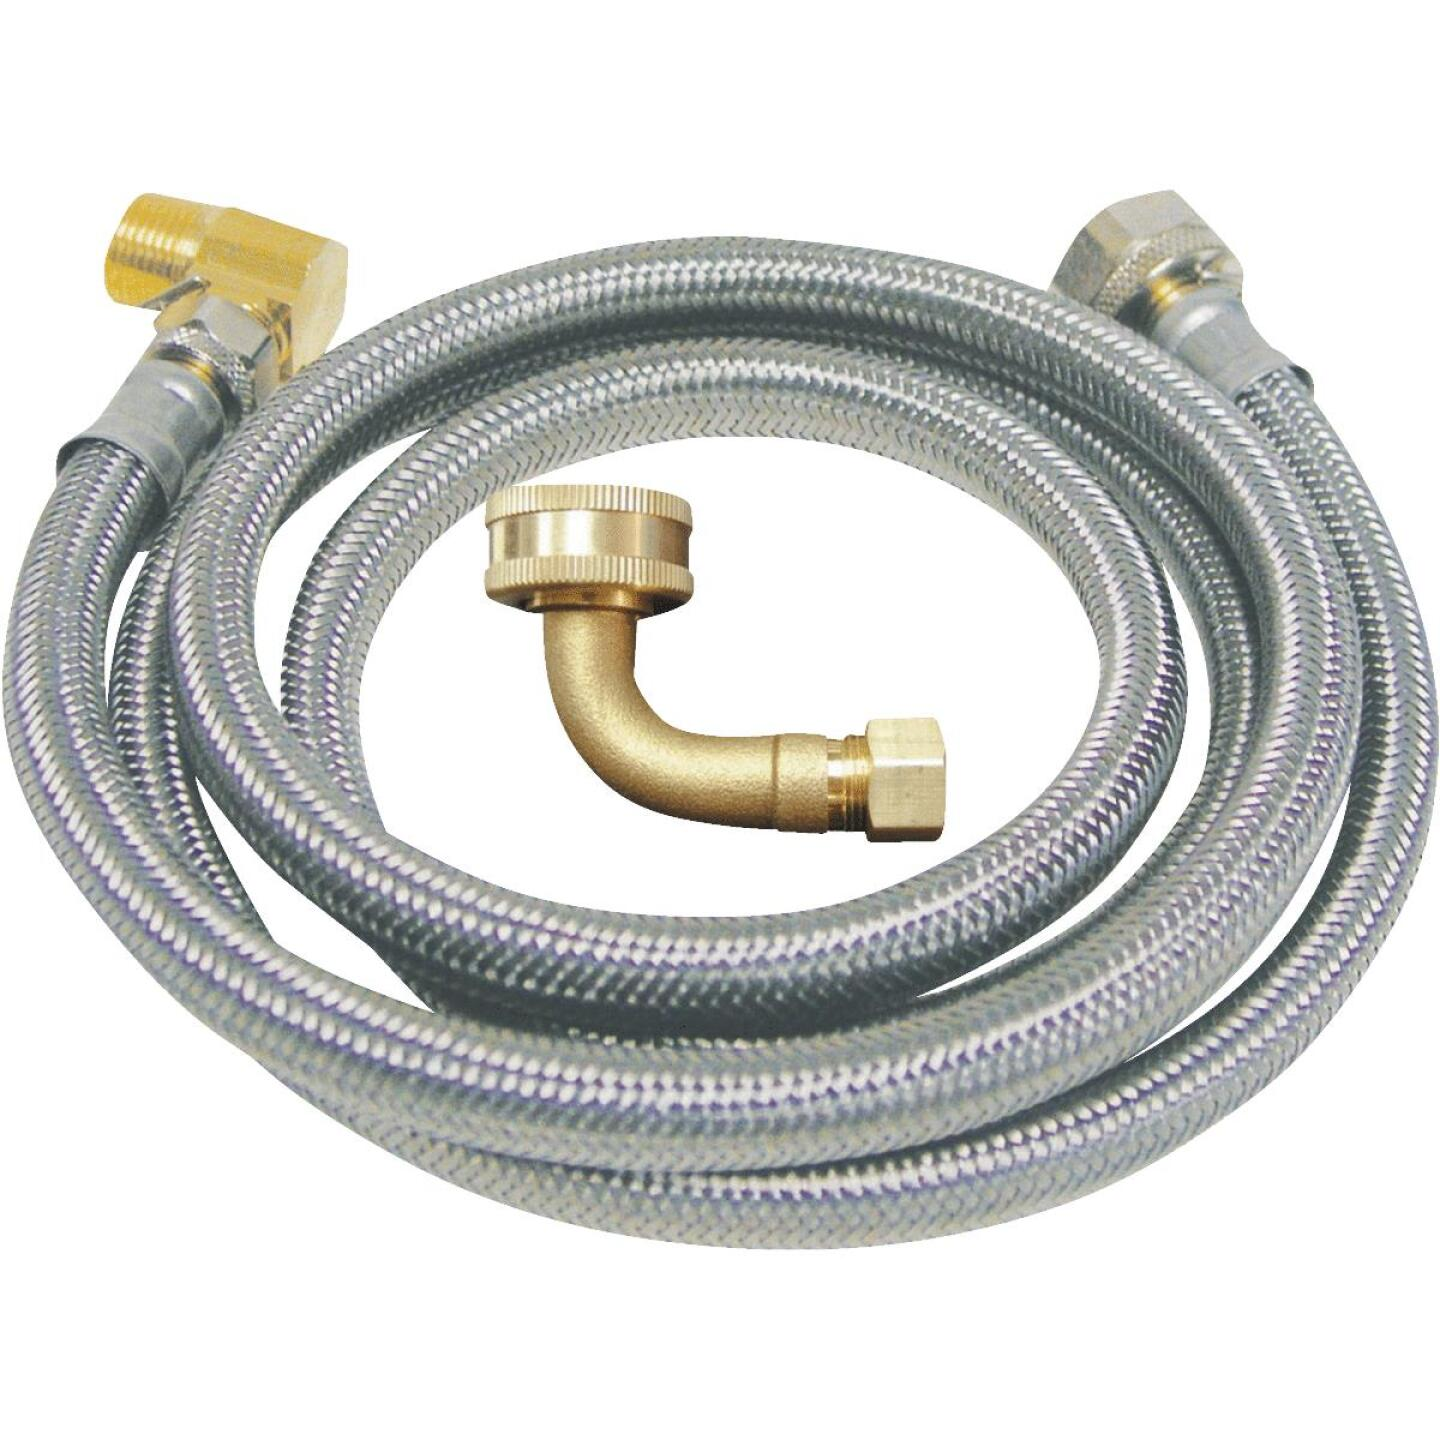 B&K 3/8 In. x 3/8 In. x 60 In. Stainless Steel Dishwasher Connector Image 1